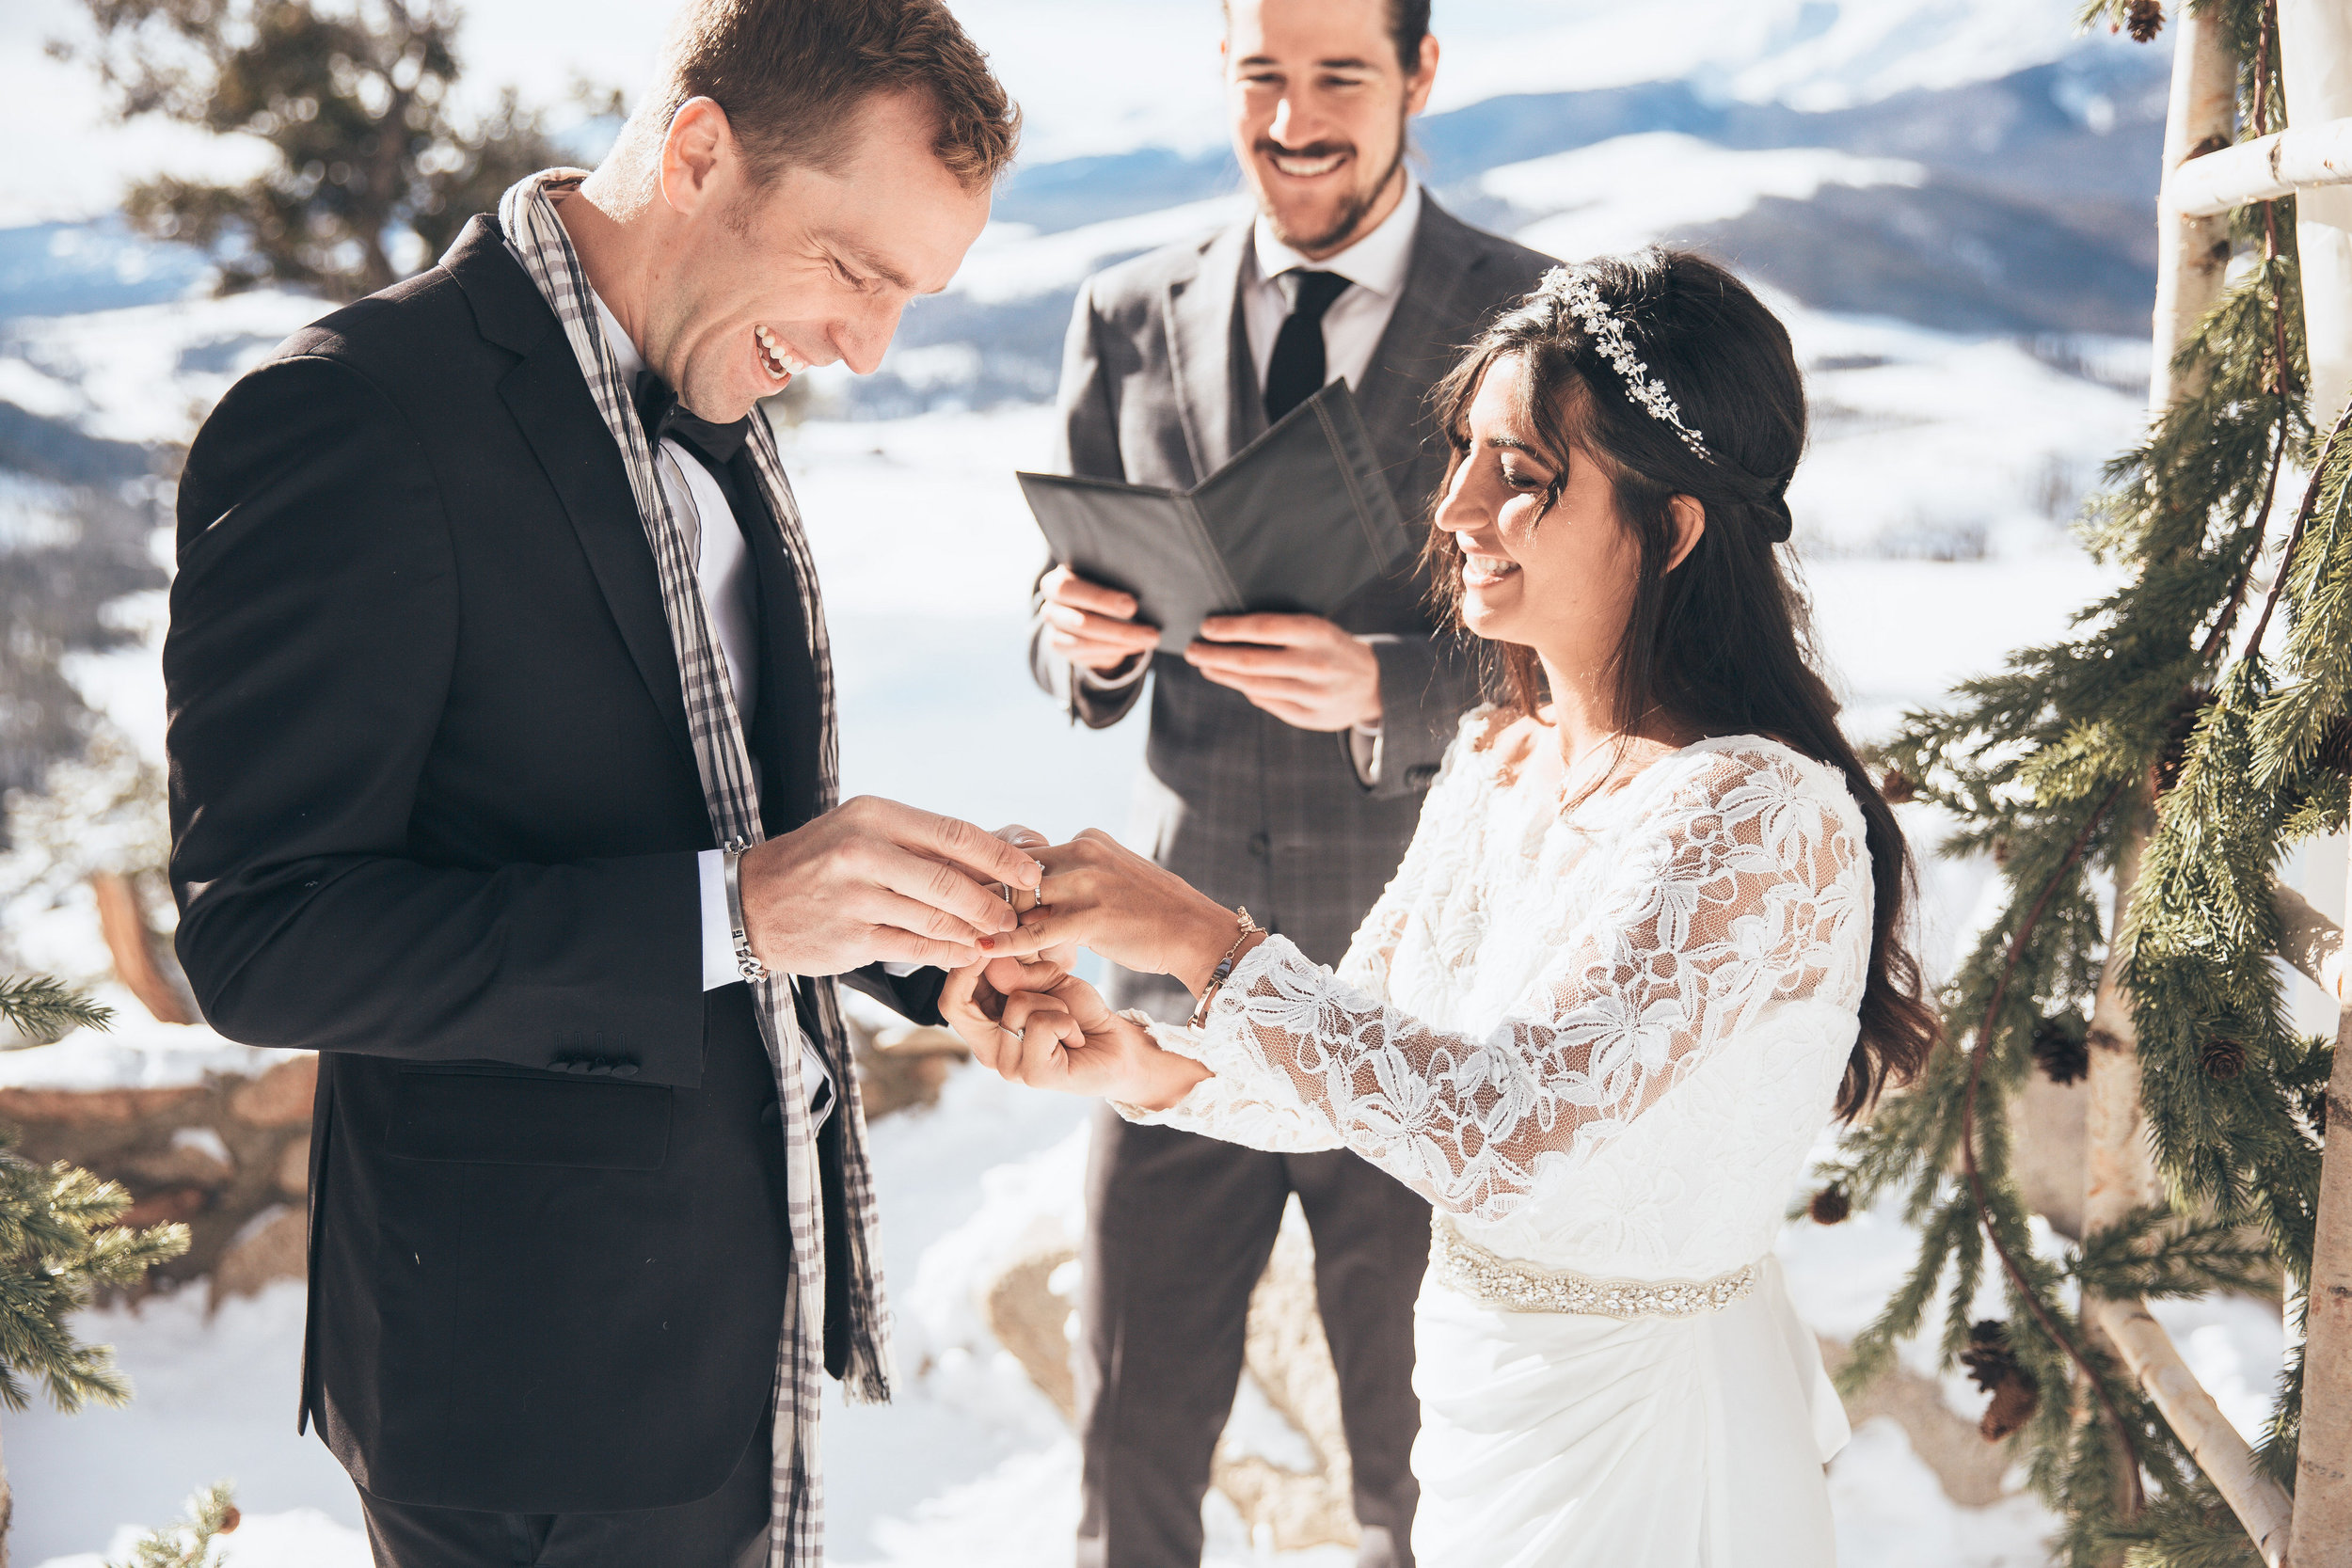 Founder - Iver Marjerison is a wedding officiant-turned-planner who's married 400+ couples in the Colorado region. He's on the front end, answering your emails/calls and planning your wedding day awesomeness.